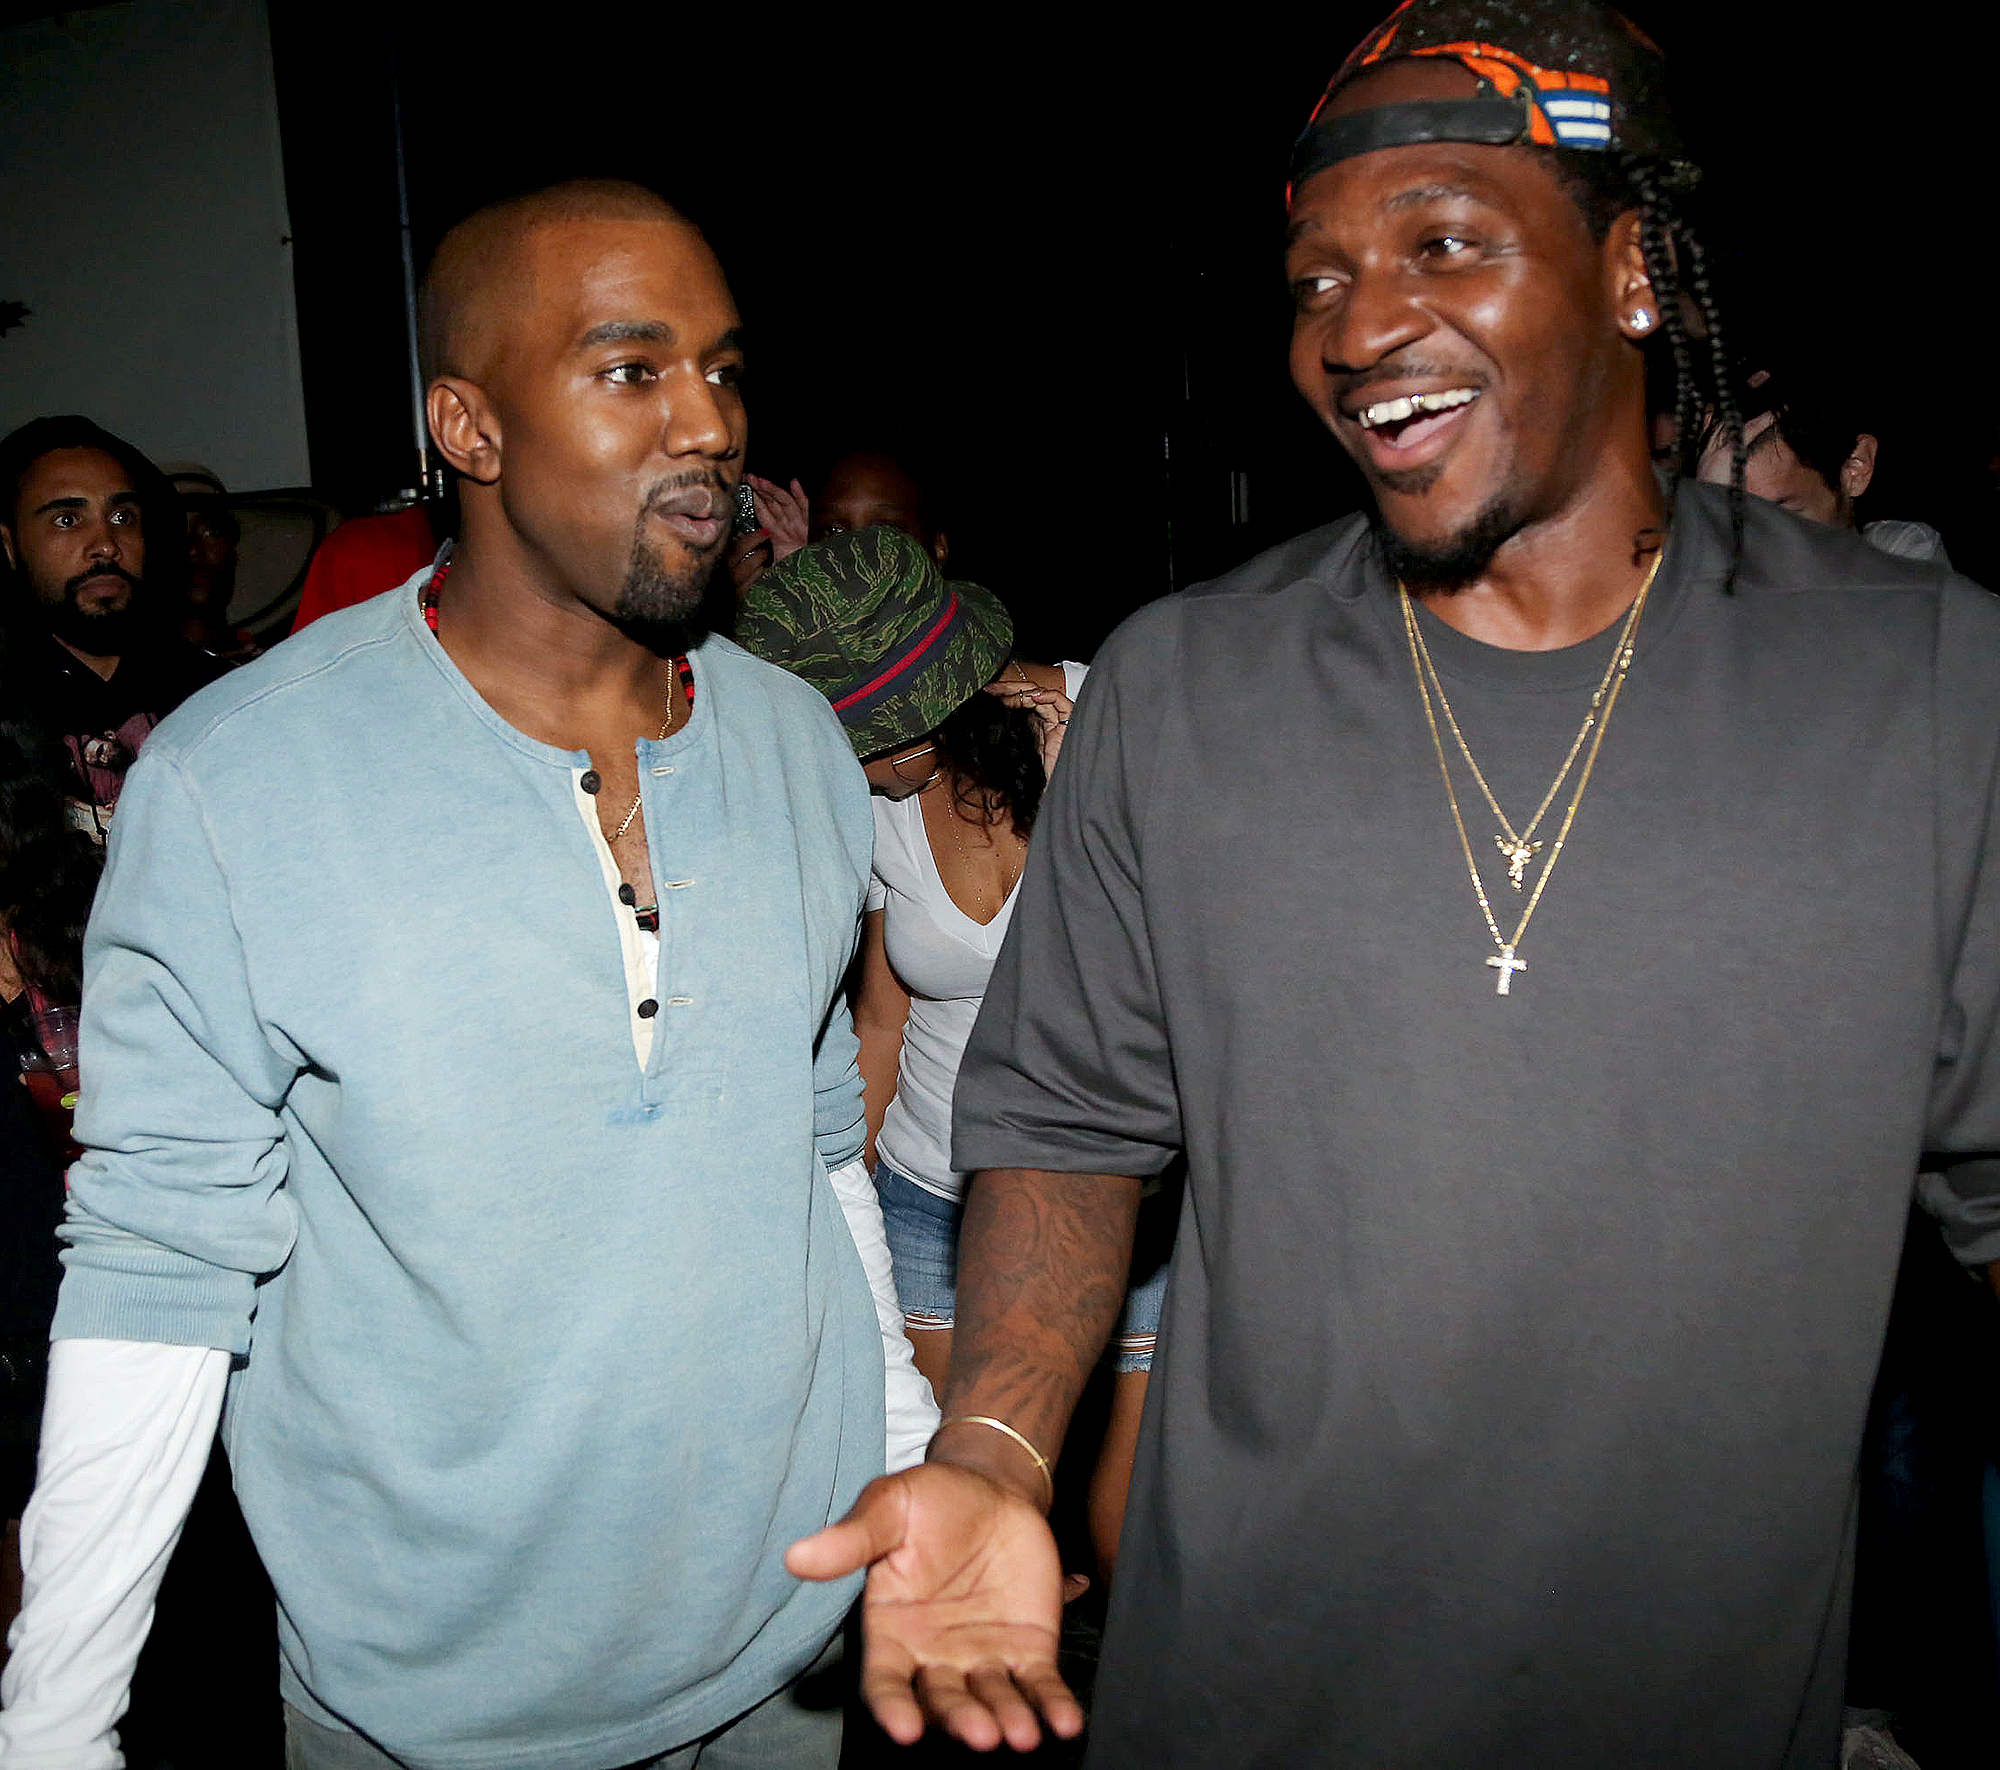 """Kanye-West-and-Pusha-T - In May 2018, rapper Pusha T released """"Infrared,"""" a track produced by West that took several shots at Drake. As a result, the """"In My Feelings"""" rapper posted a photo of a $100,000 invoice for """"promotional assistance and career-reviving."""""""